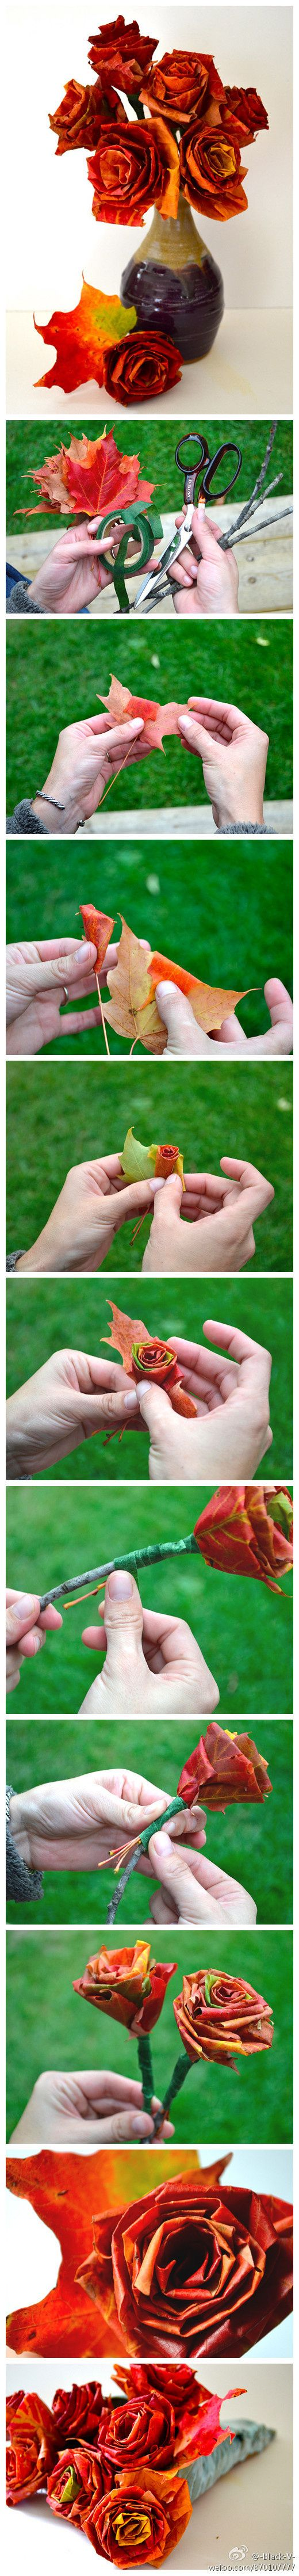 Make roses out of leaves!